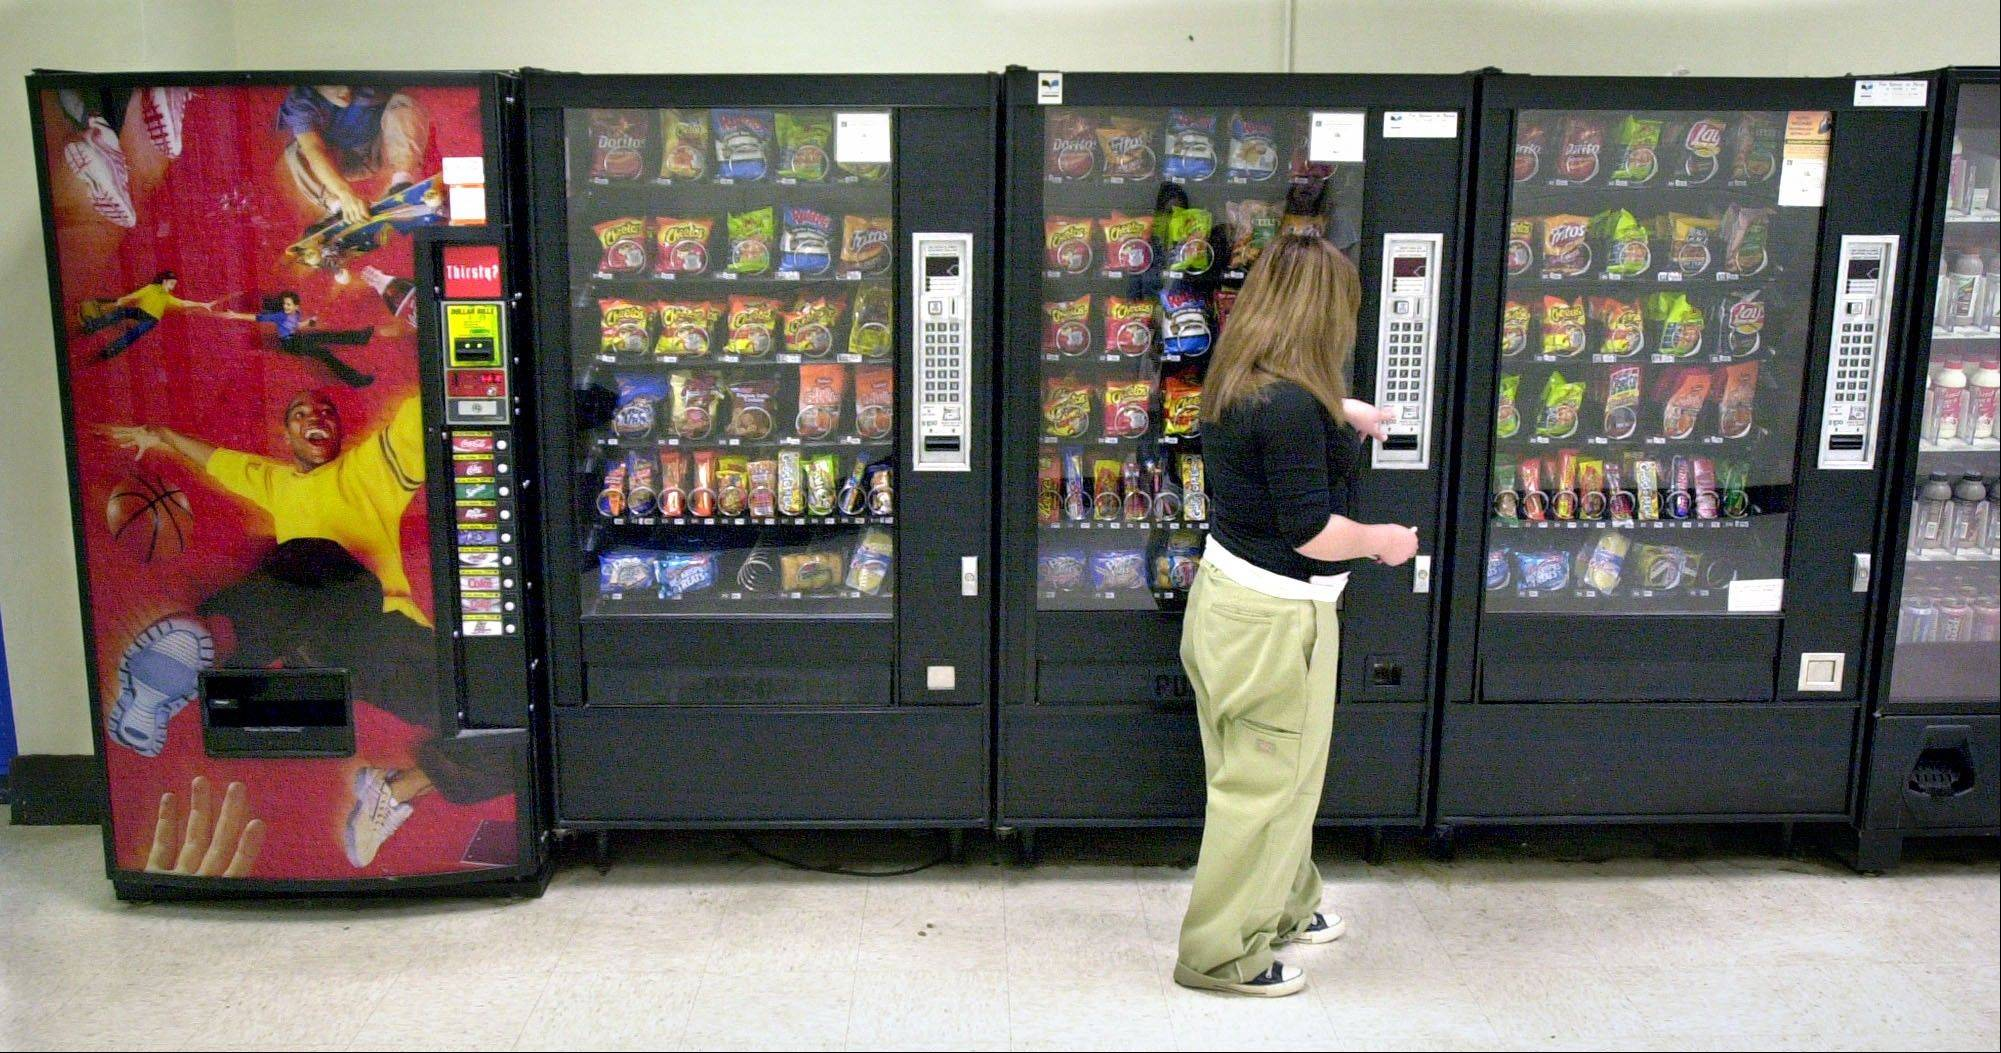 A student purchases a brown sugar Pop-Tart from a vending machine in the hallway outside the school cafeteria, in Wichita, Kan. High-calorie sports drinks and candy bars will be removed from school vending machines and cafeteria lines as soon as next year, replaced with diet drinks, granola bars and other healthier items the Agriculture Department said Thursday.